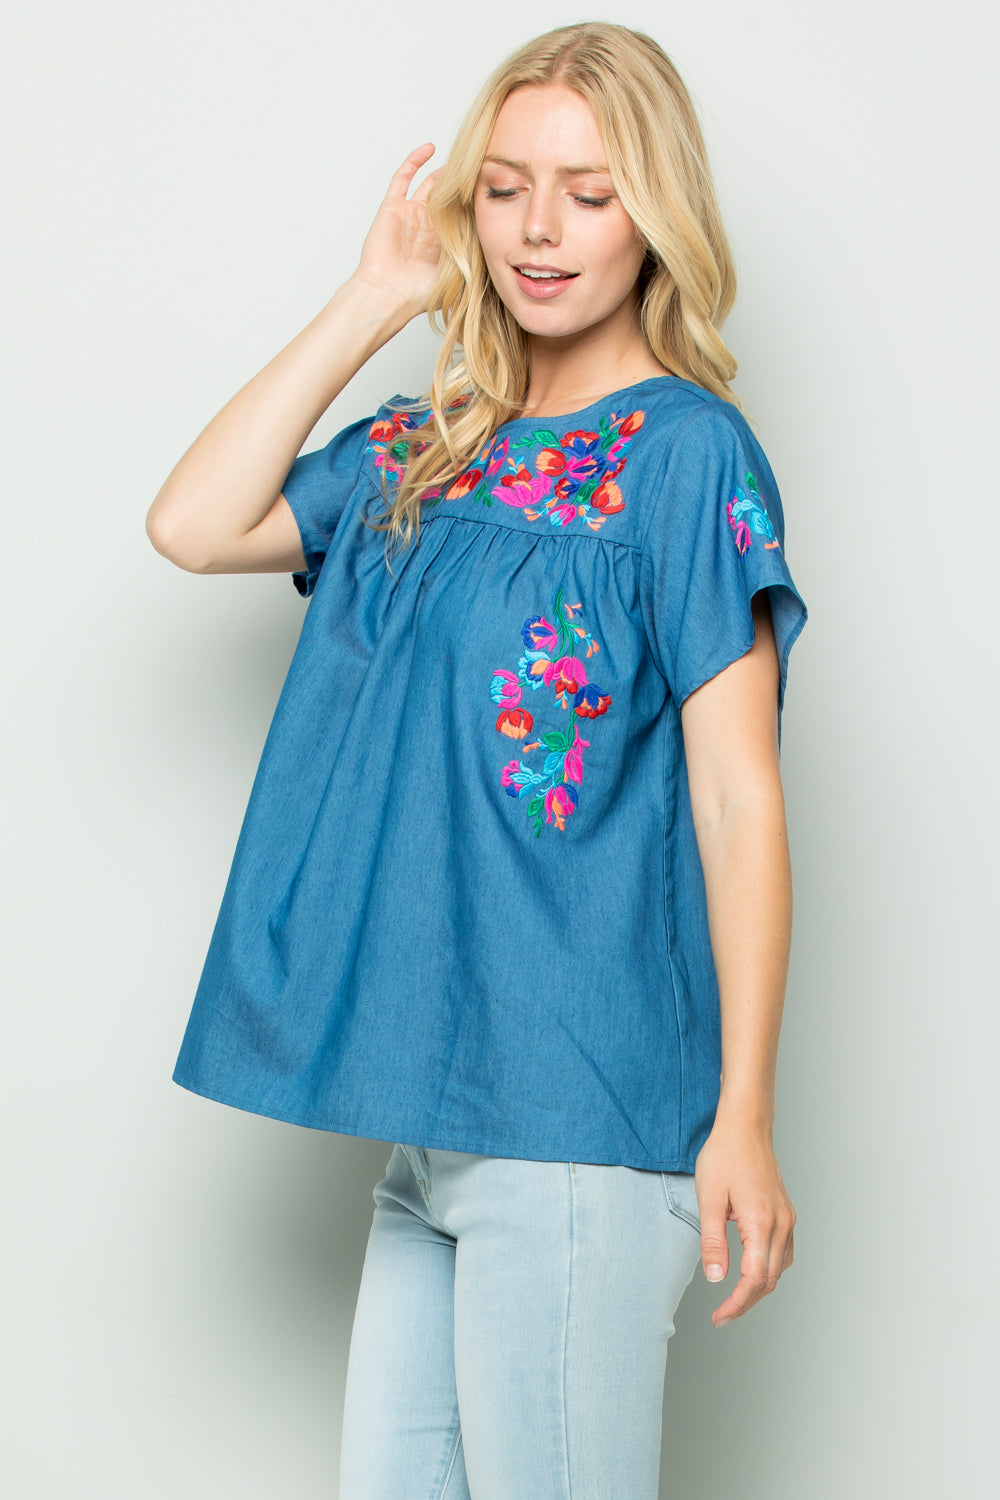 T2745 Floral Embroidery Chambray Top